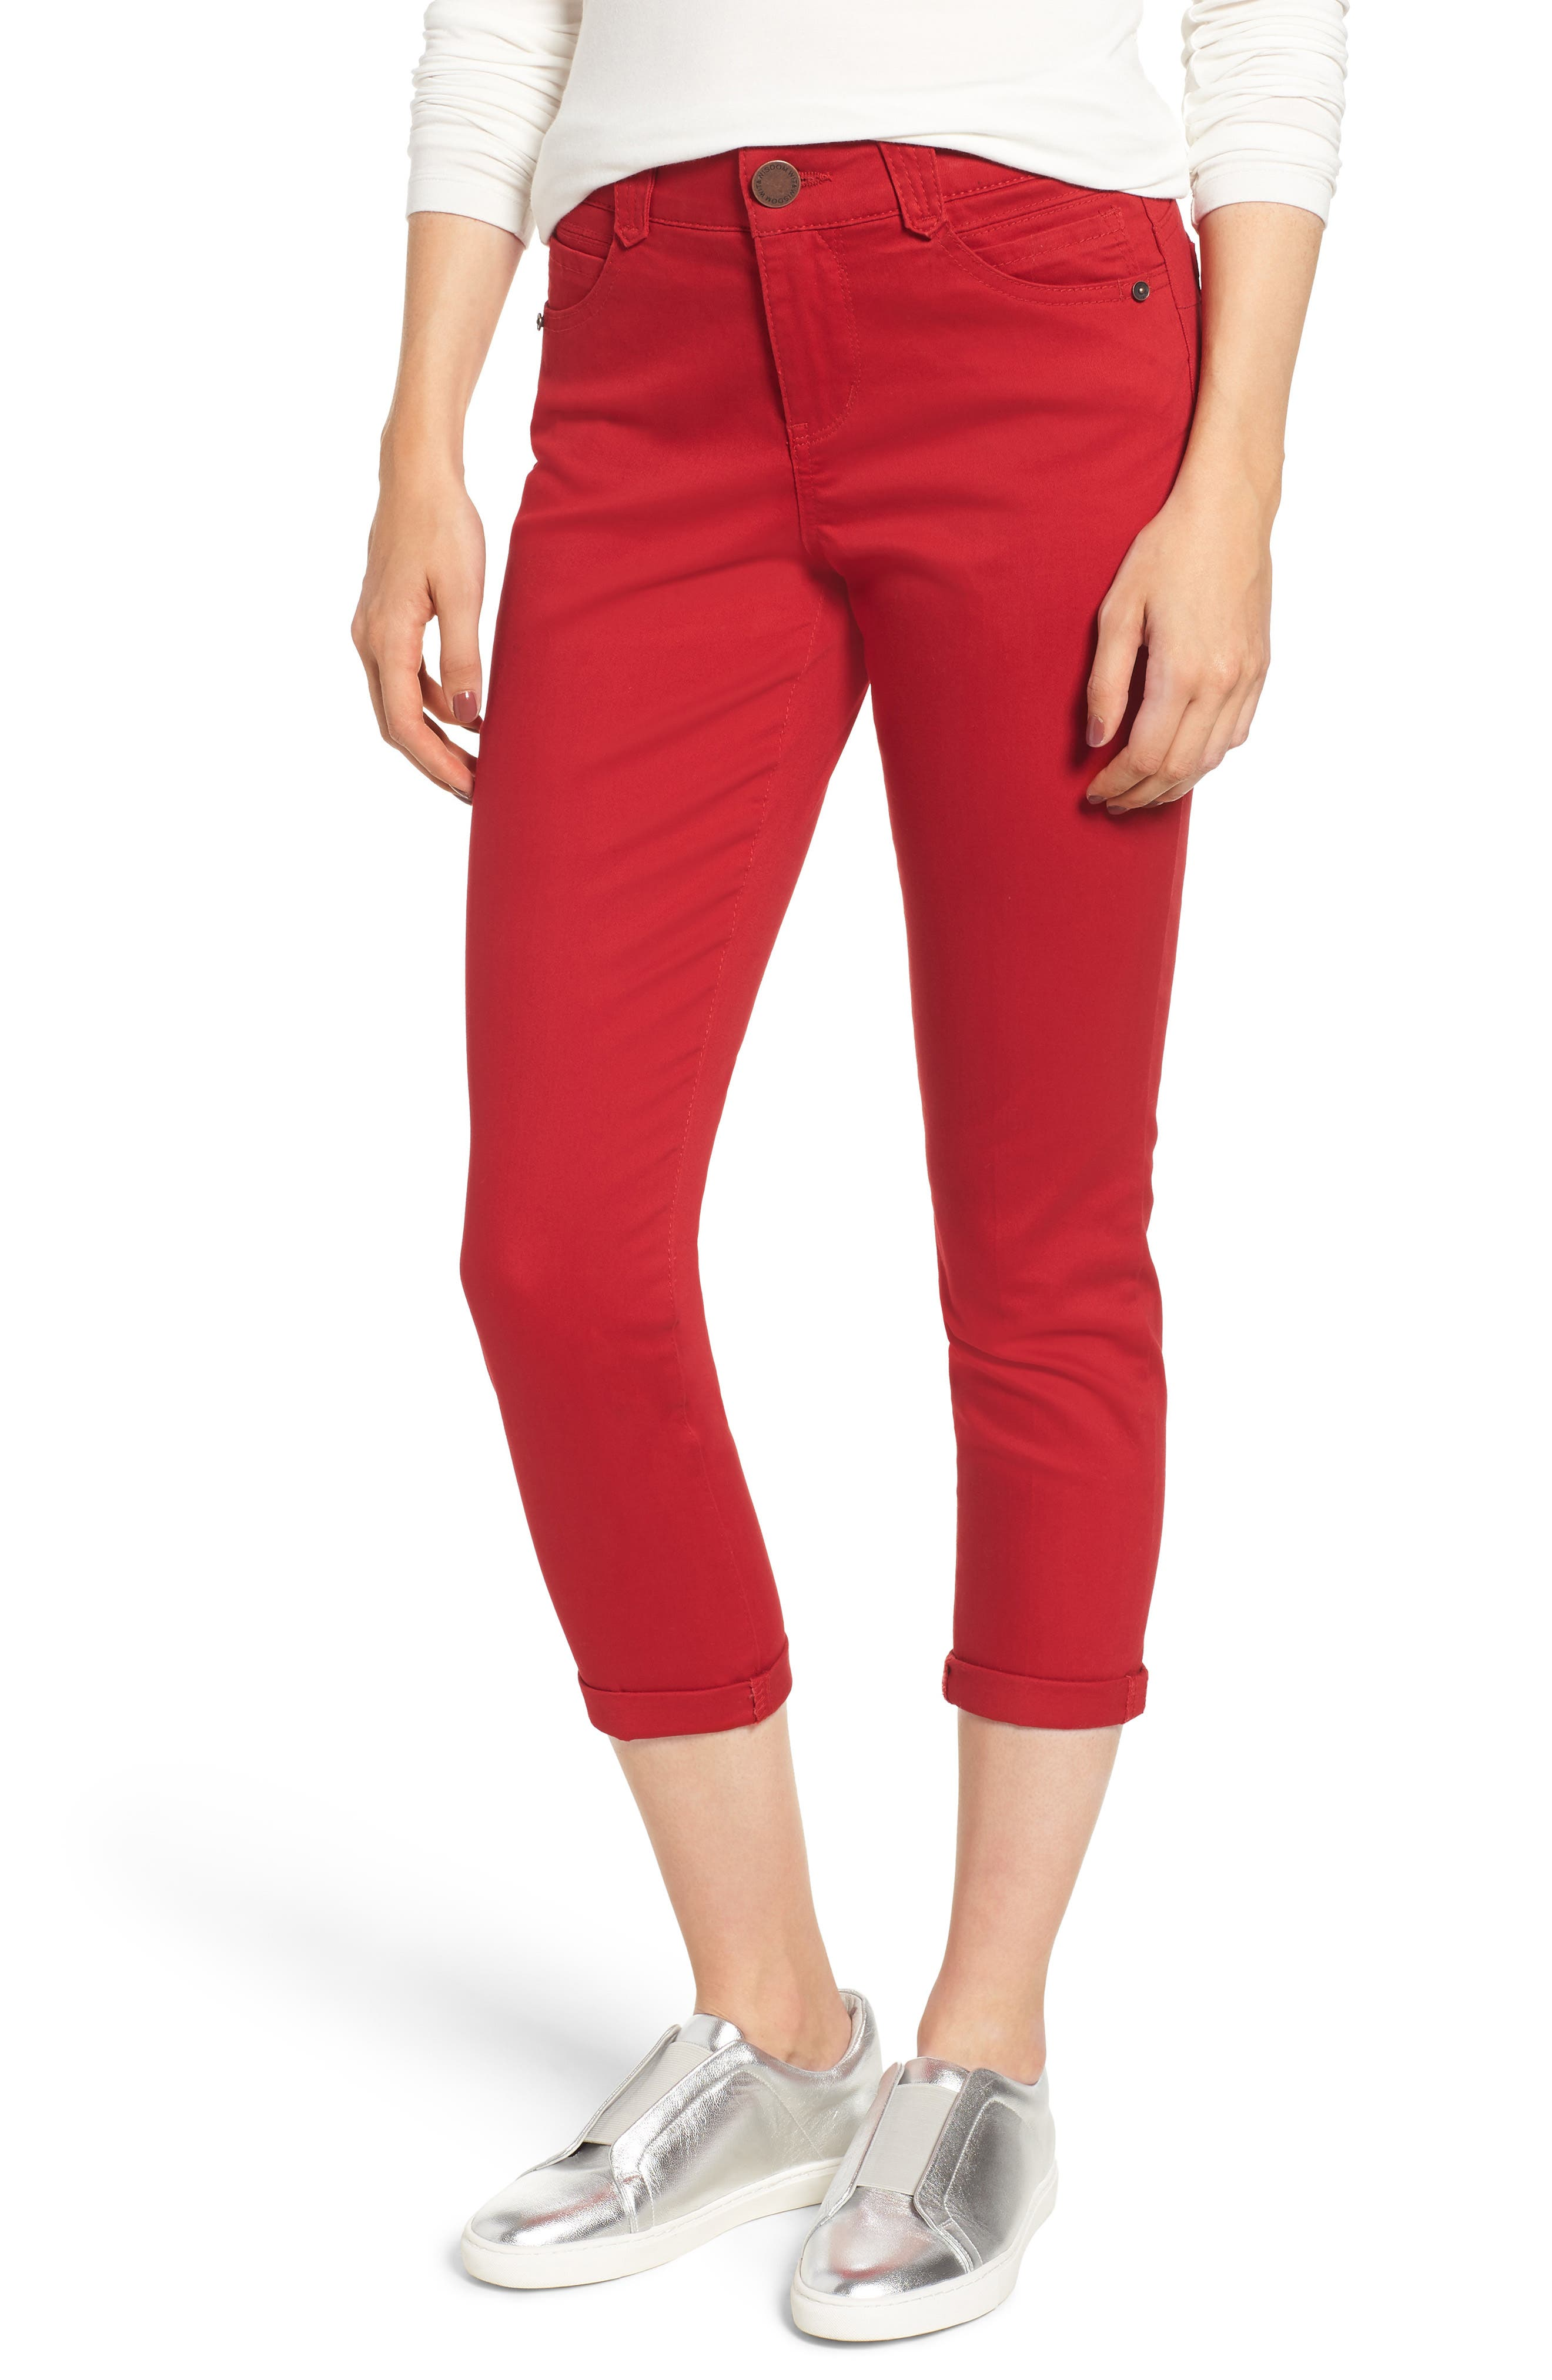 Roll up in casual color wearing these slim pants designed with \\\'Ab-solution\\\' powermesh panels to mold and hold so you look all-day excellent. Style Name: Wit & Wisdom Ab-Solution Crop Skinny Pants (Nordstrom Exclusive) (Regular & Petite). Style Number: 5672519. Available in stores.